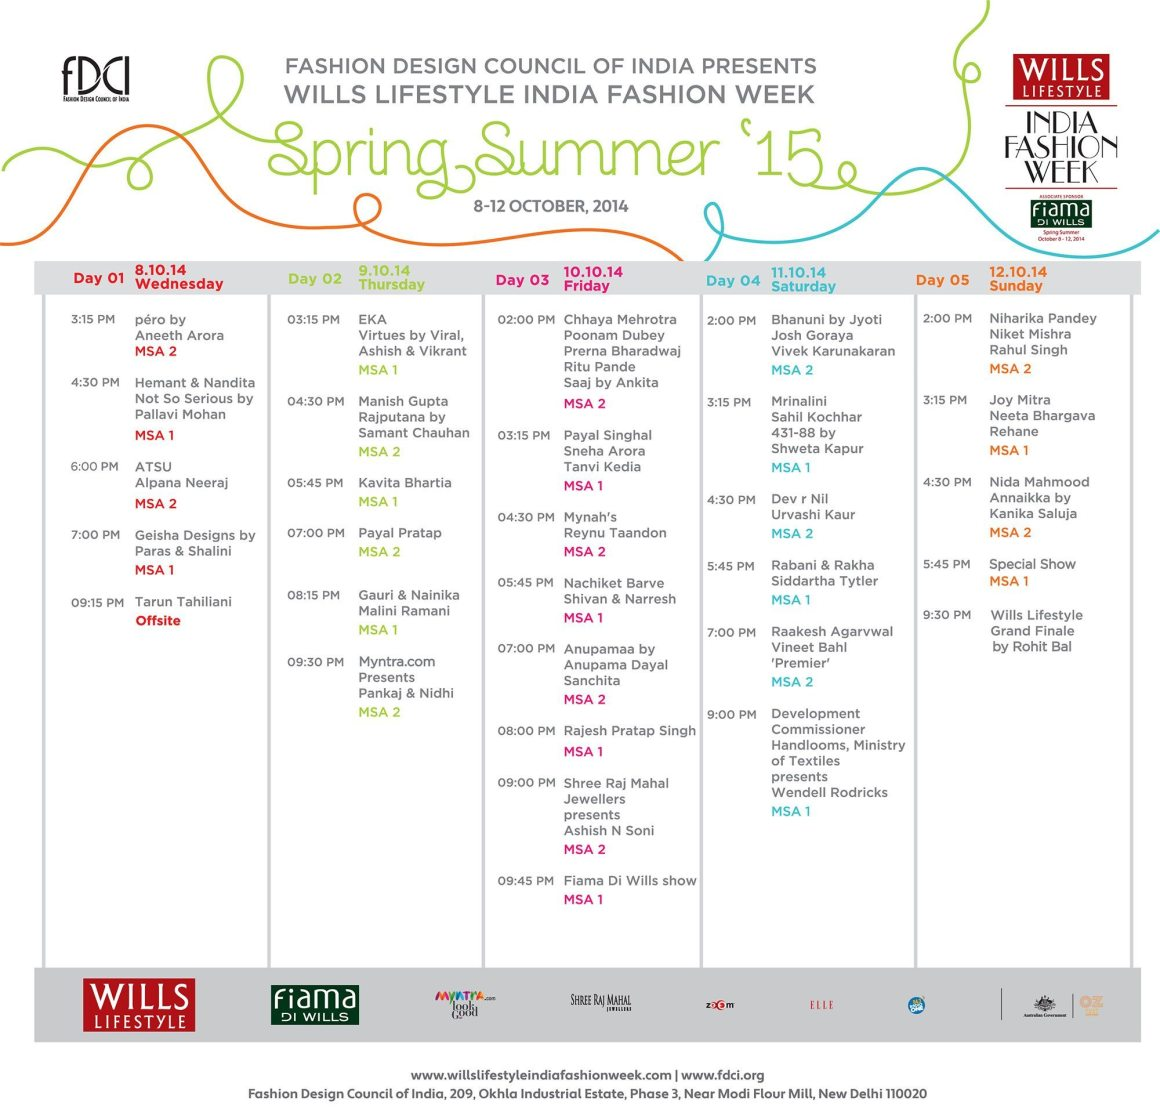 FDCI-Wills-Lifestyle-India-Fashion-Week-Spring-Summer-2015-NainaCo-Luxury-Photographer-Storyteller-Raconteuse-Schedule